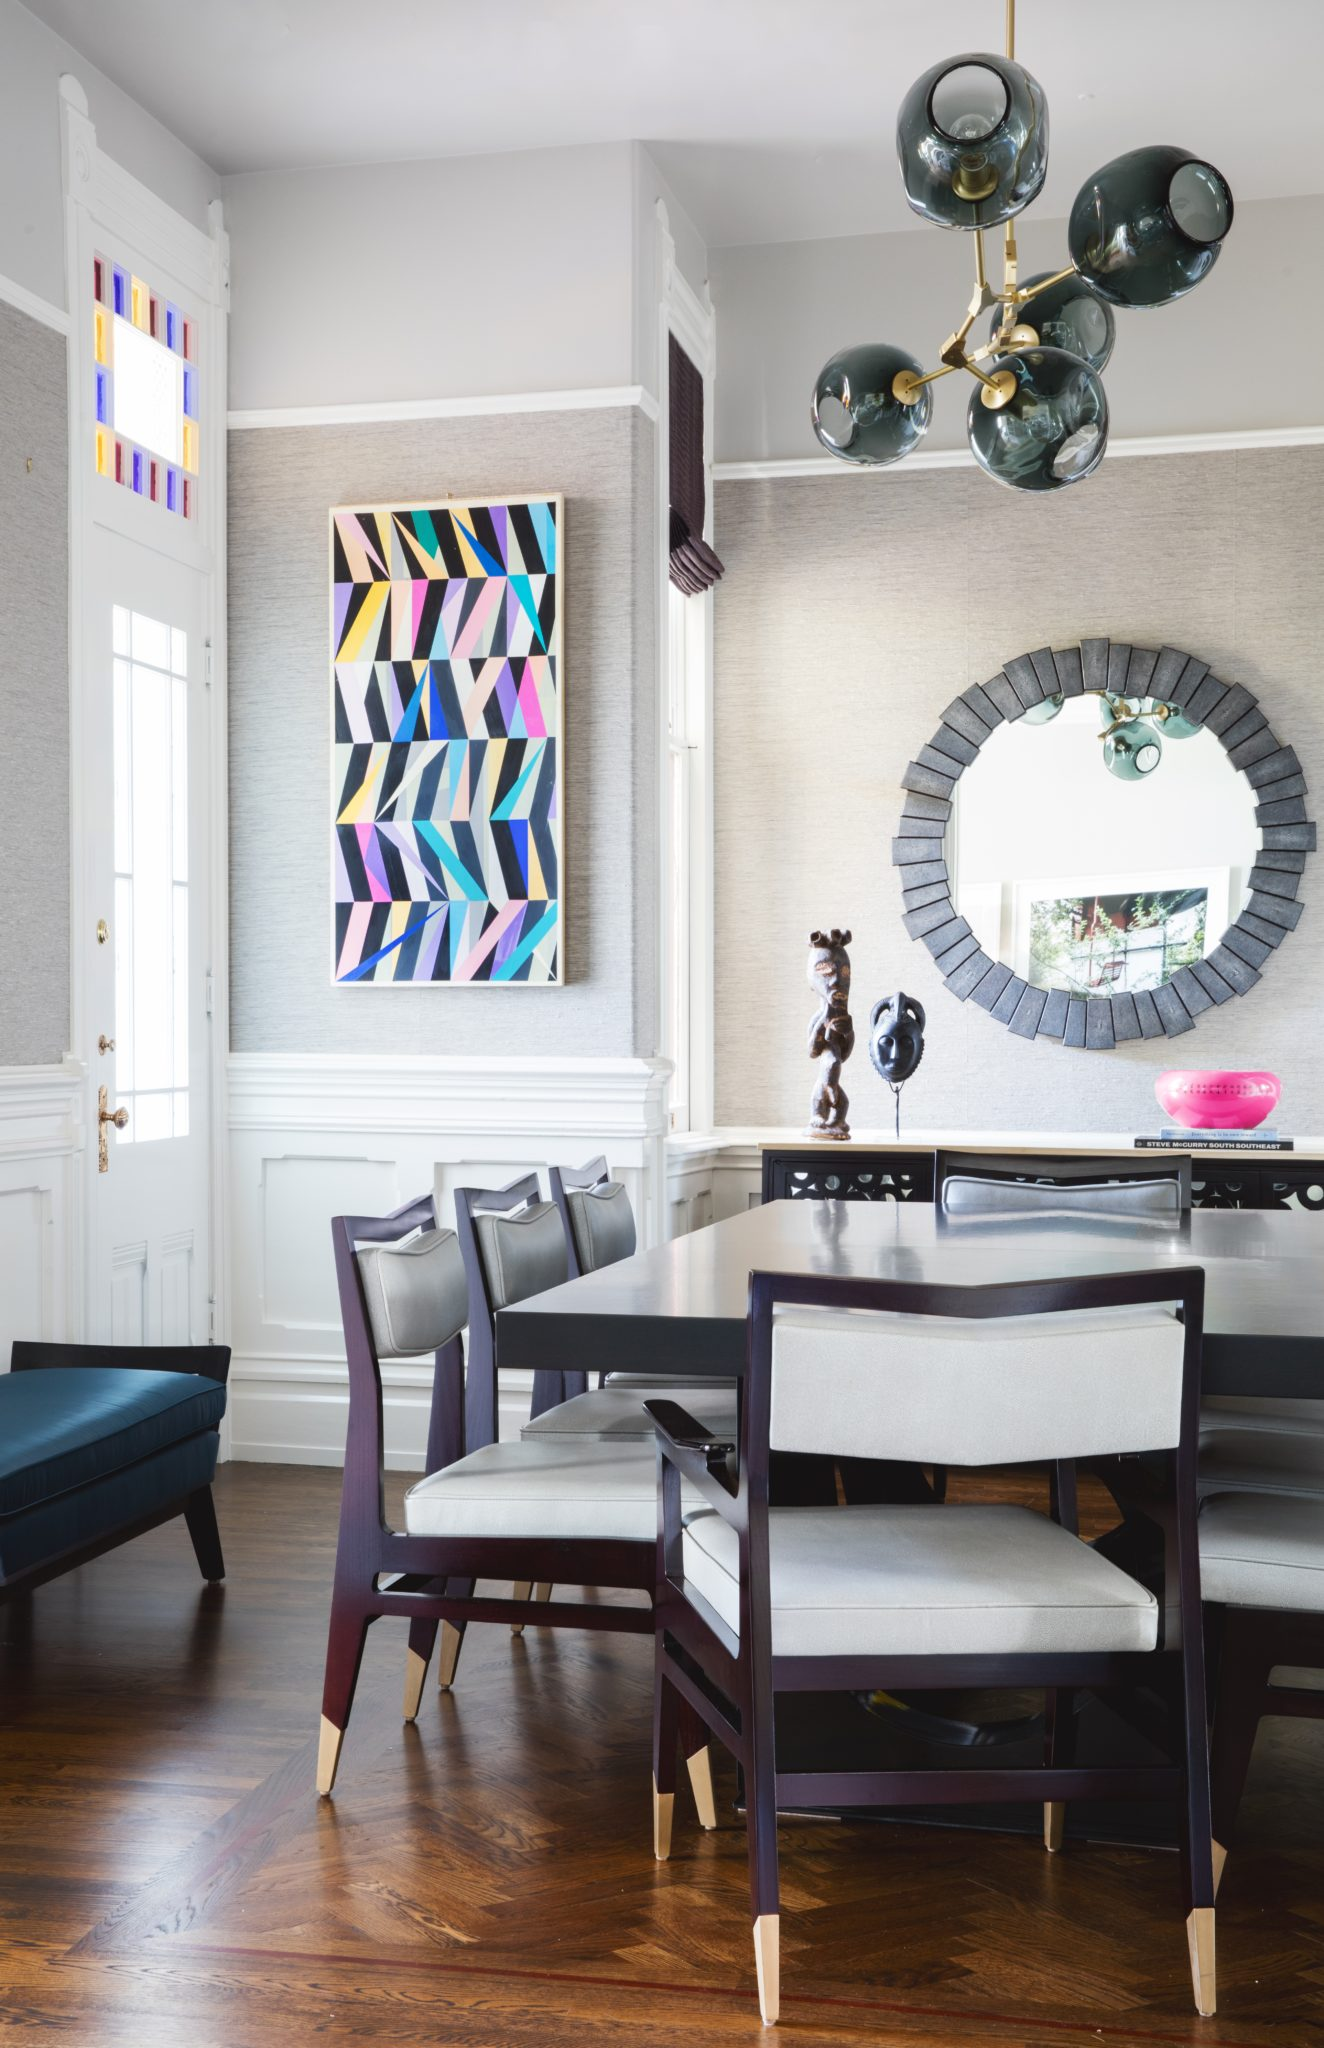 Dining room with stained glass panel, contemporary art, and herringbone floor by Jeff Schlarb Design Studio